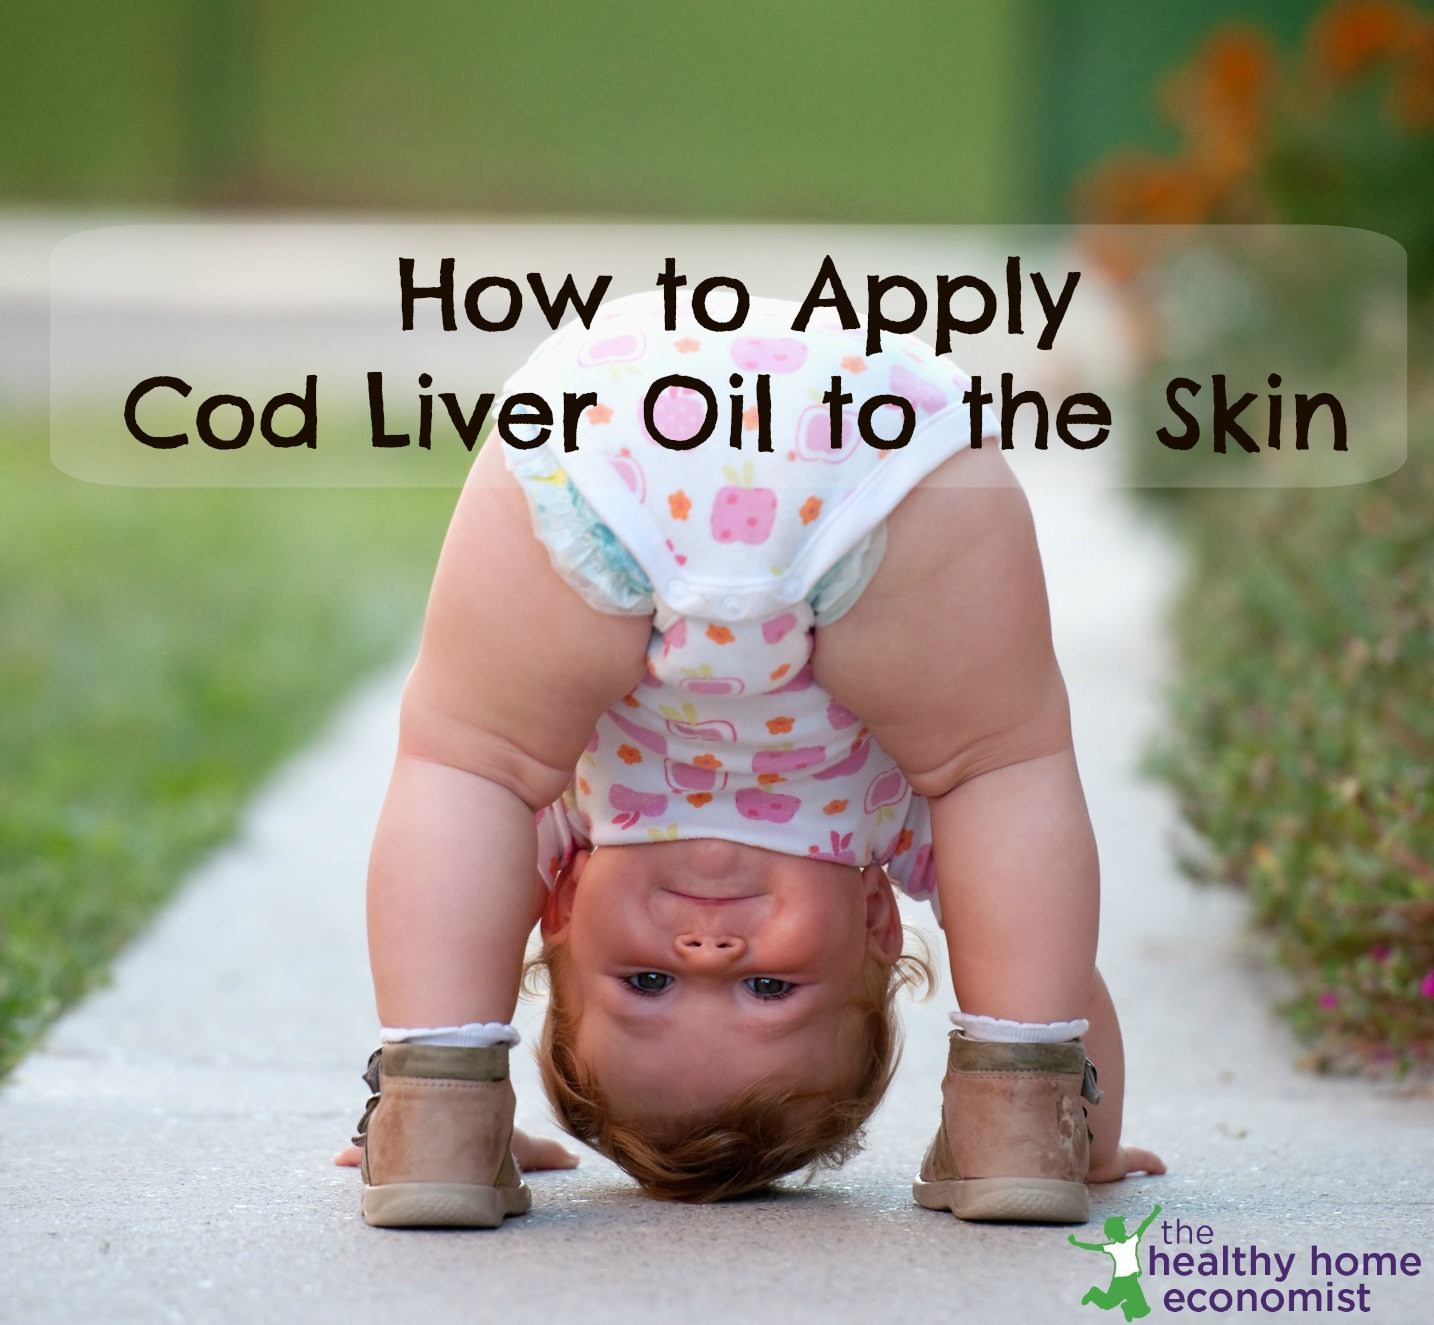 How to Apply Cod Liver Oil to the Skin (instead of taking orally